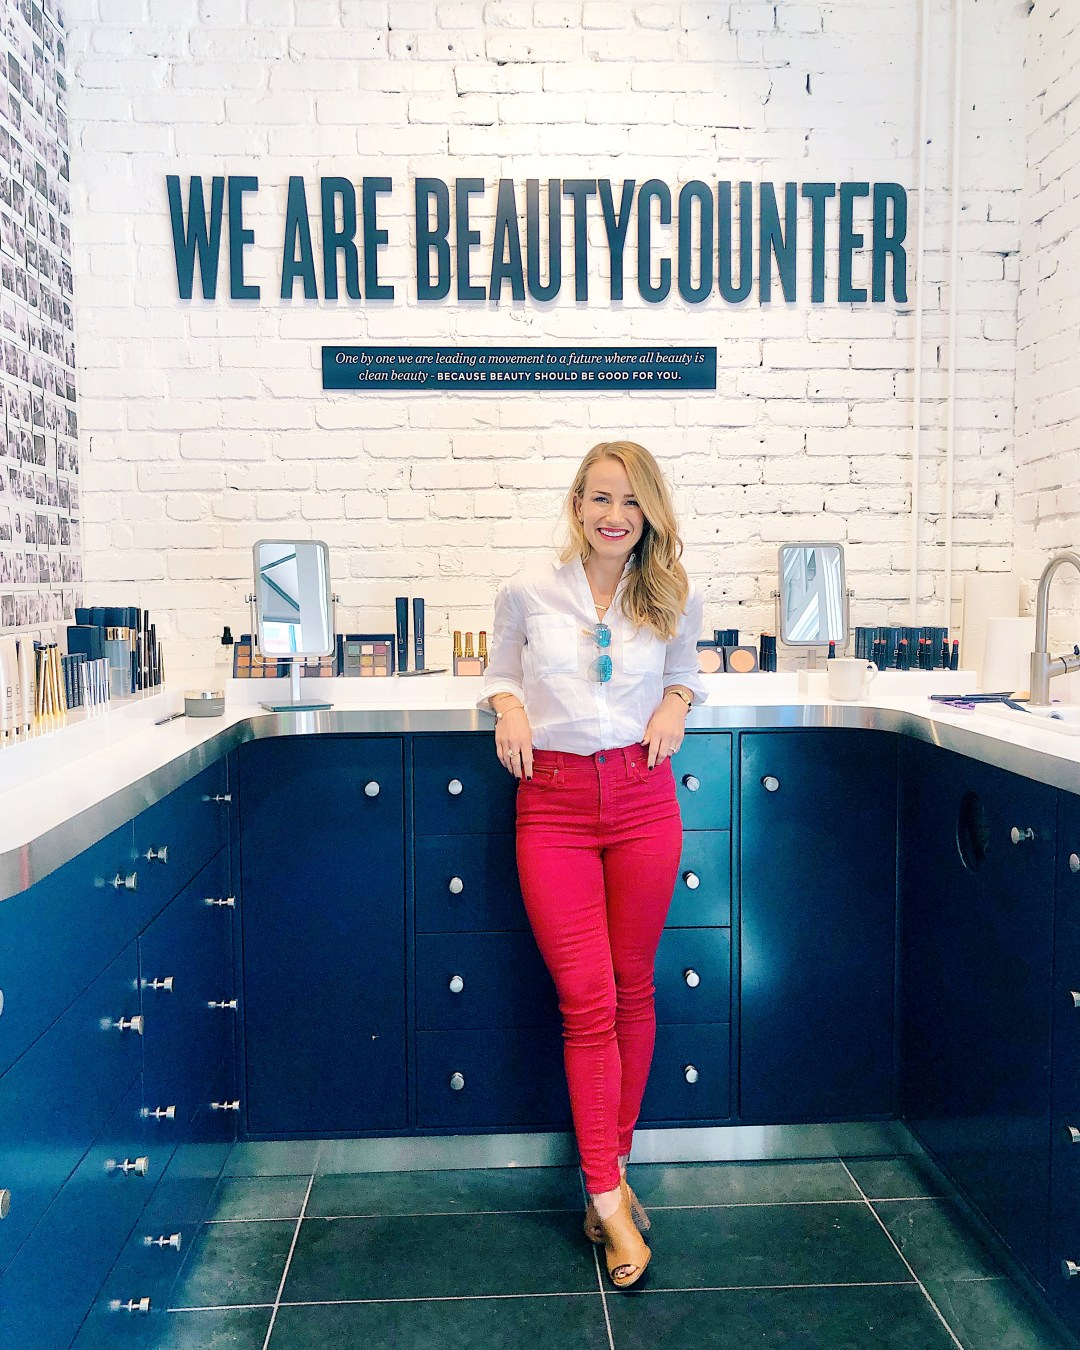 What is Beautycounter